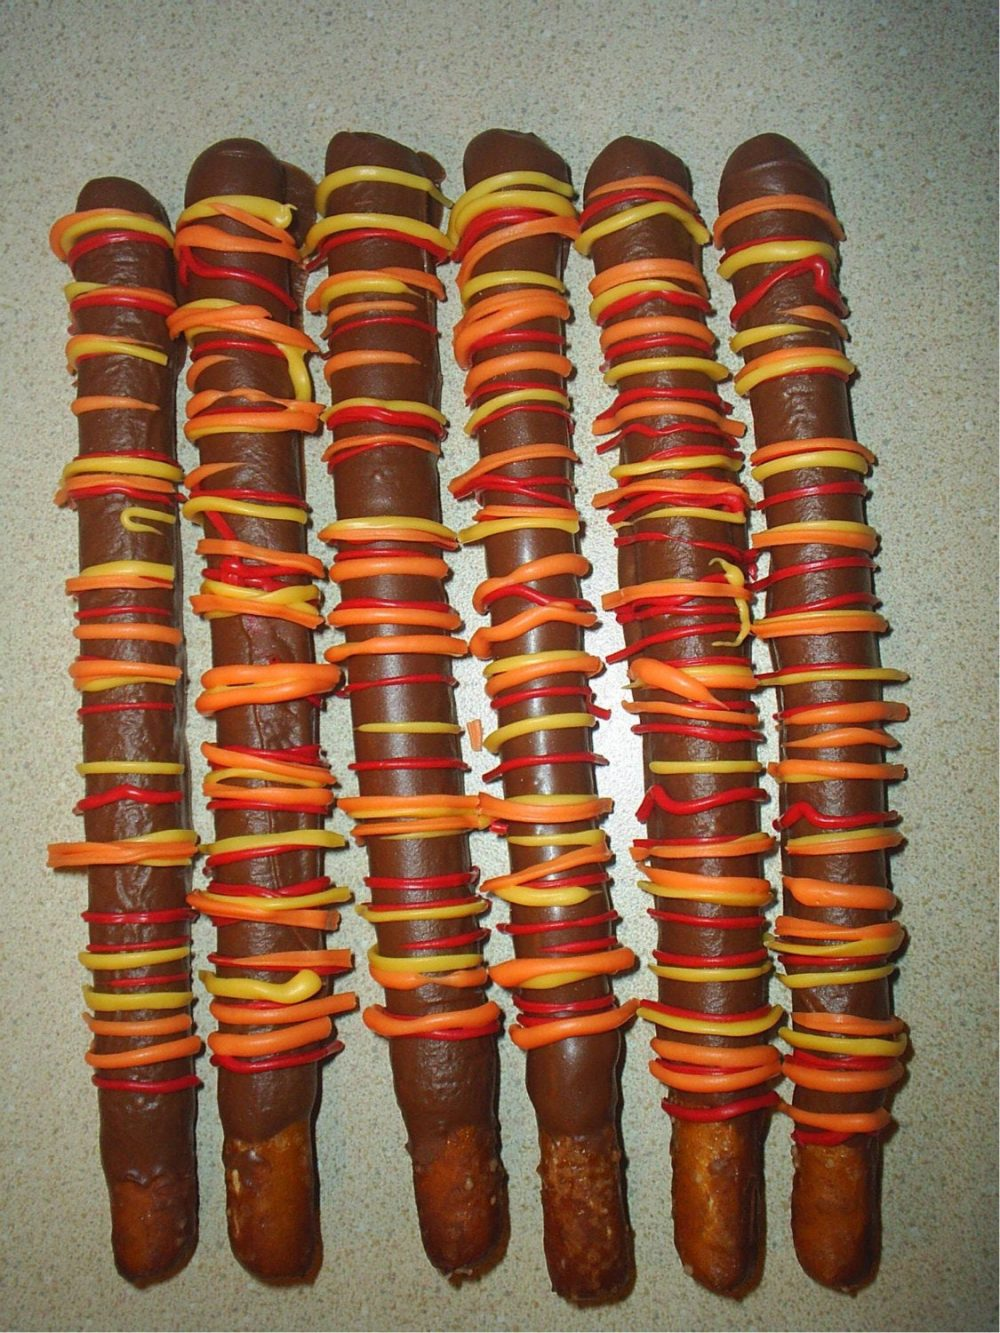 Fall Party Favors Chocolate Covered Pretzels Orange Thanksgiving Gifts Hostess Autumn Candy Wedding